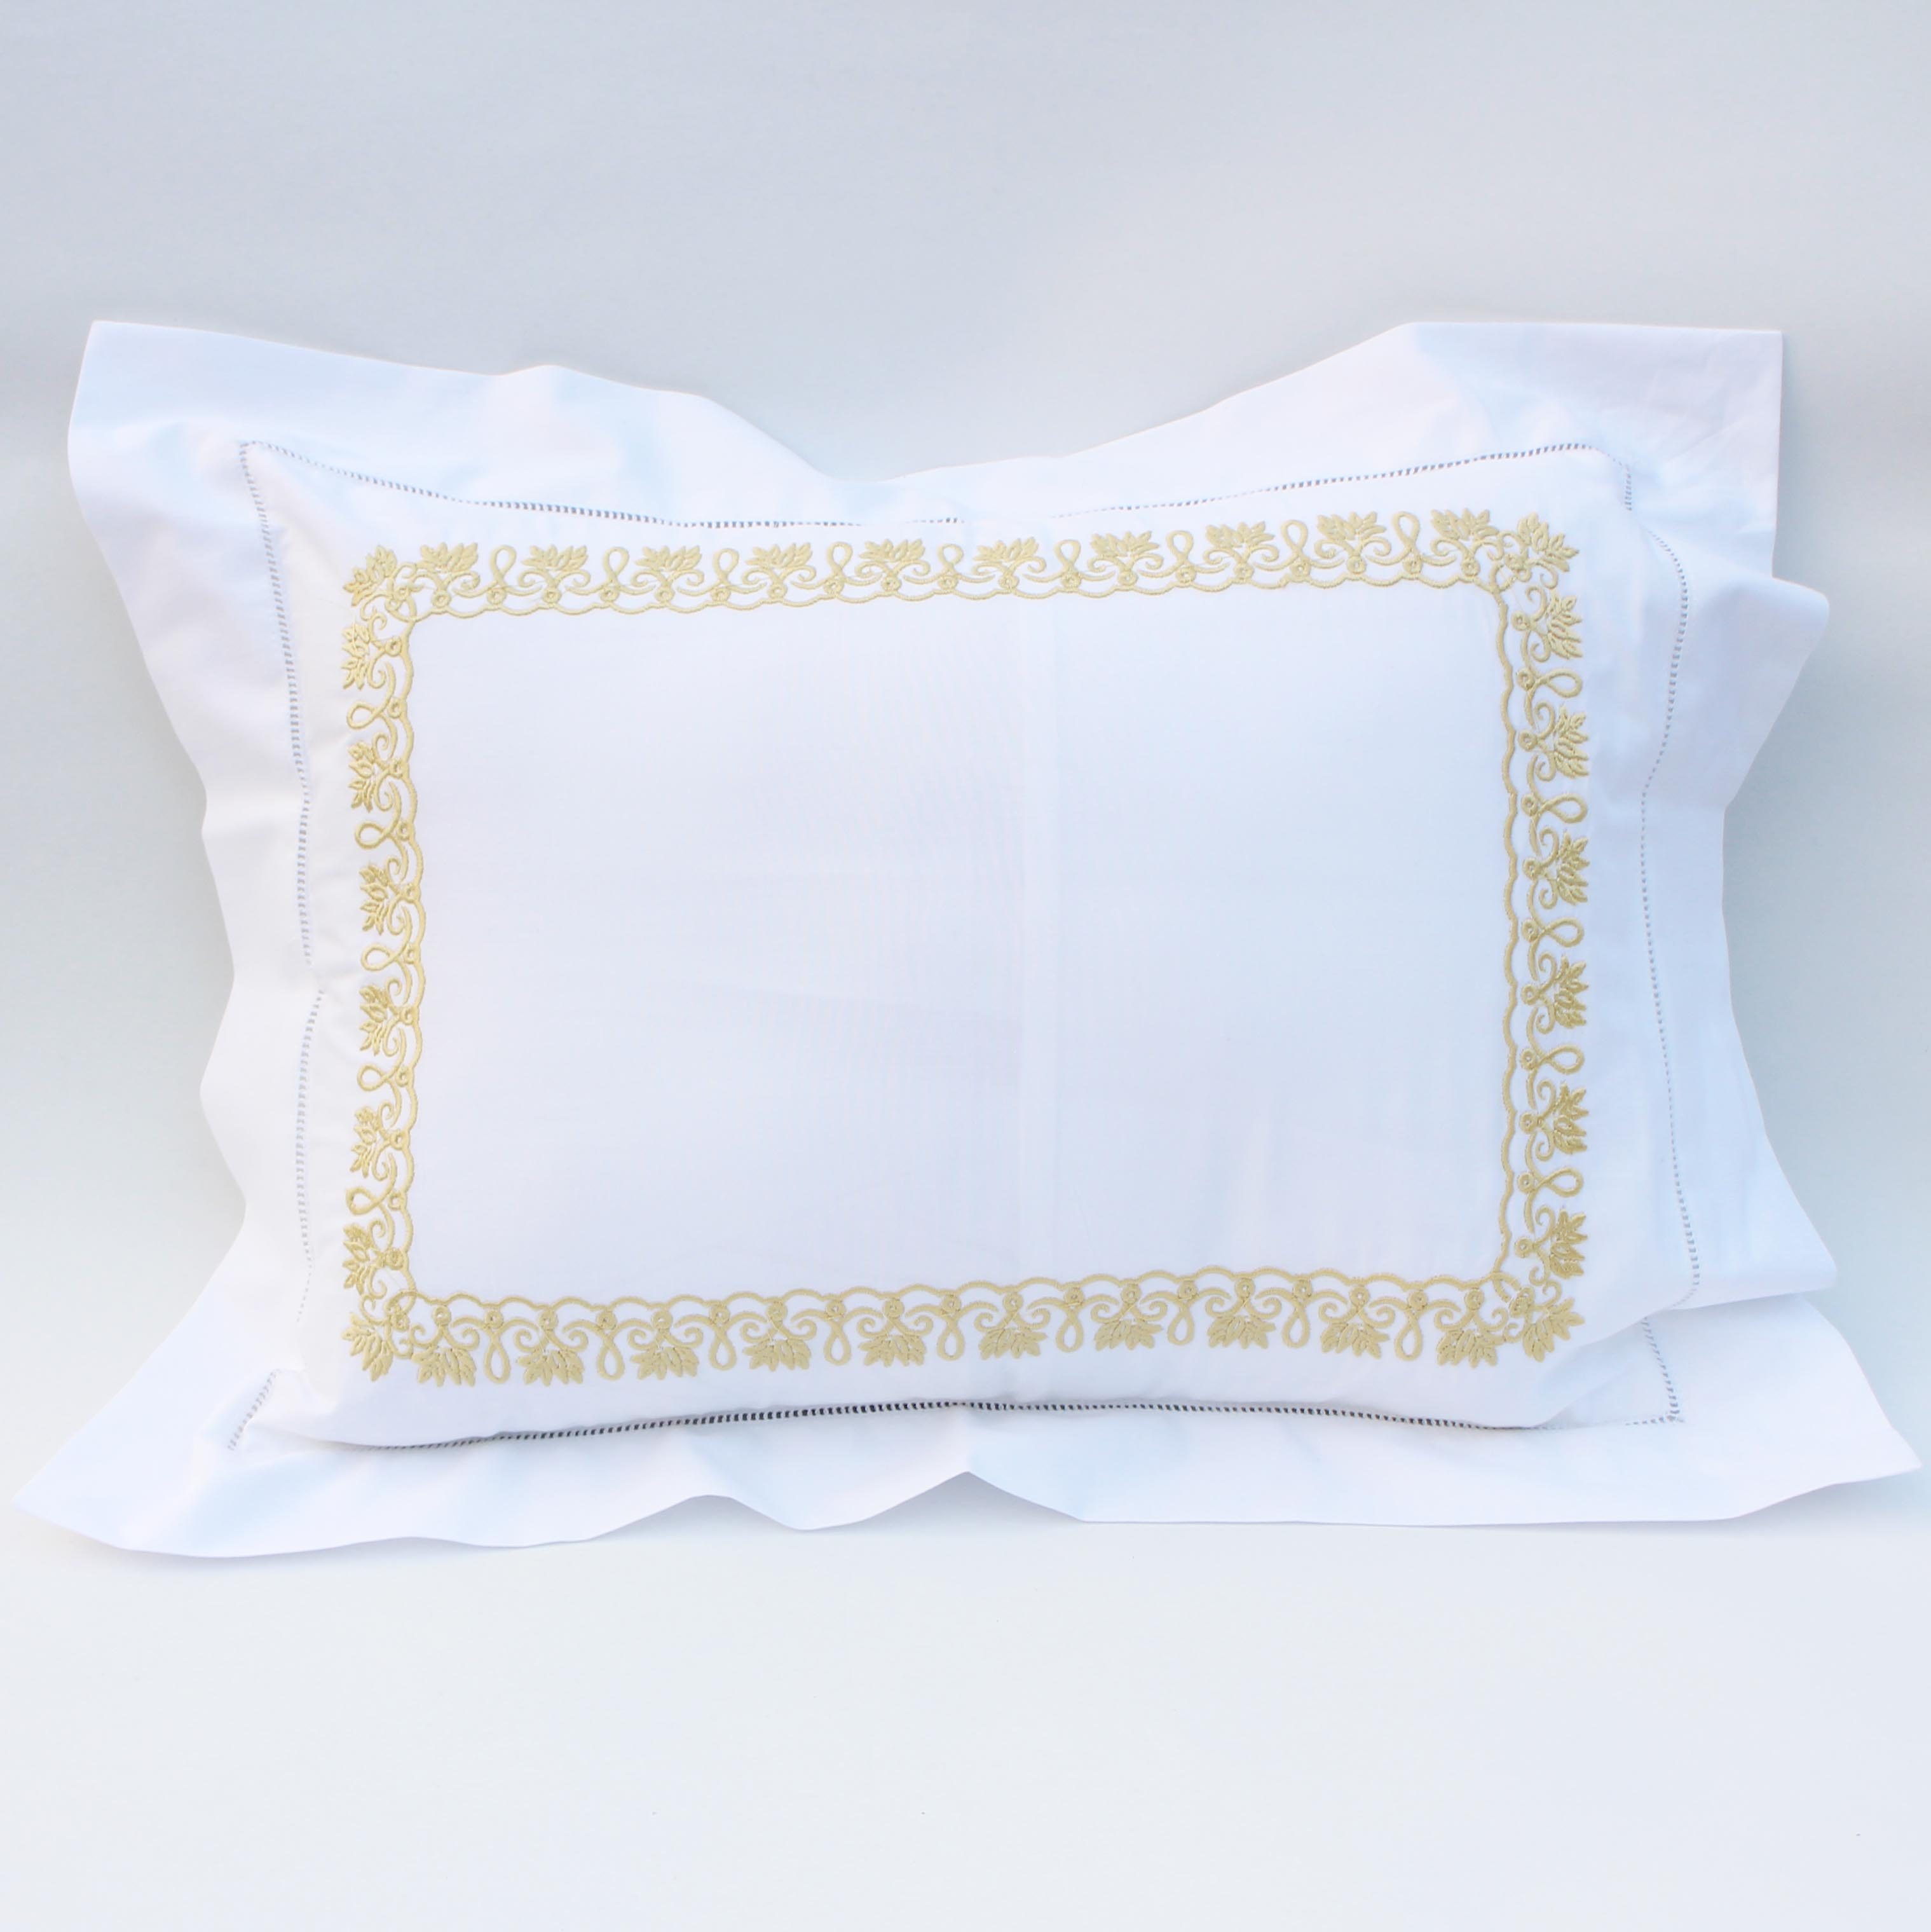 Embroidery cotton  decorative pillow with hemstitch